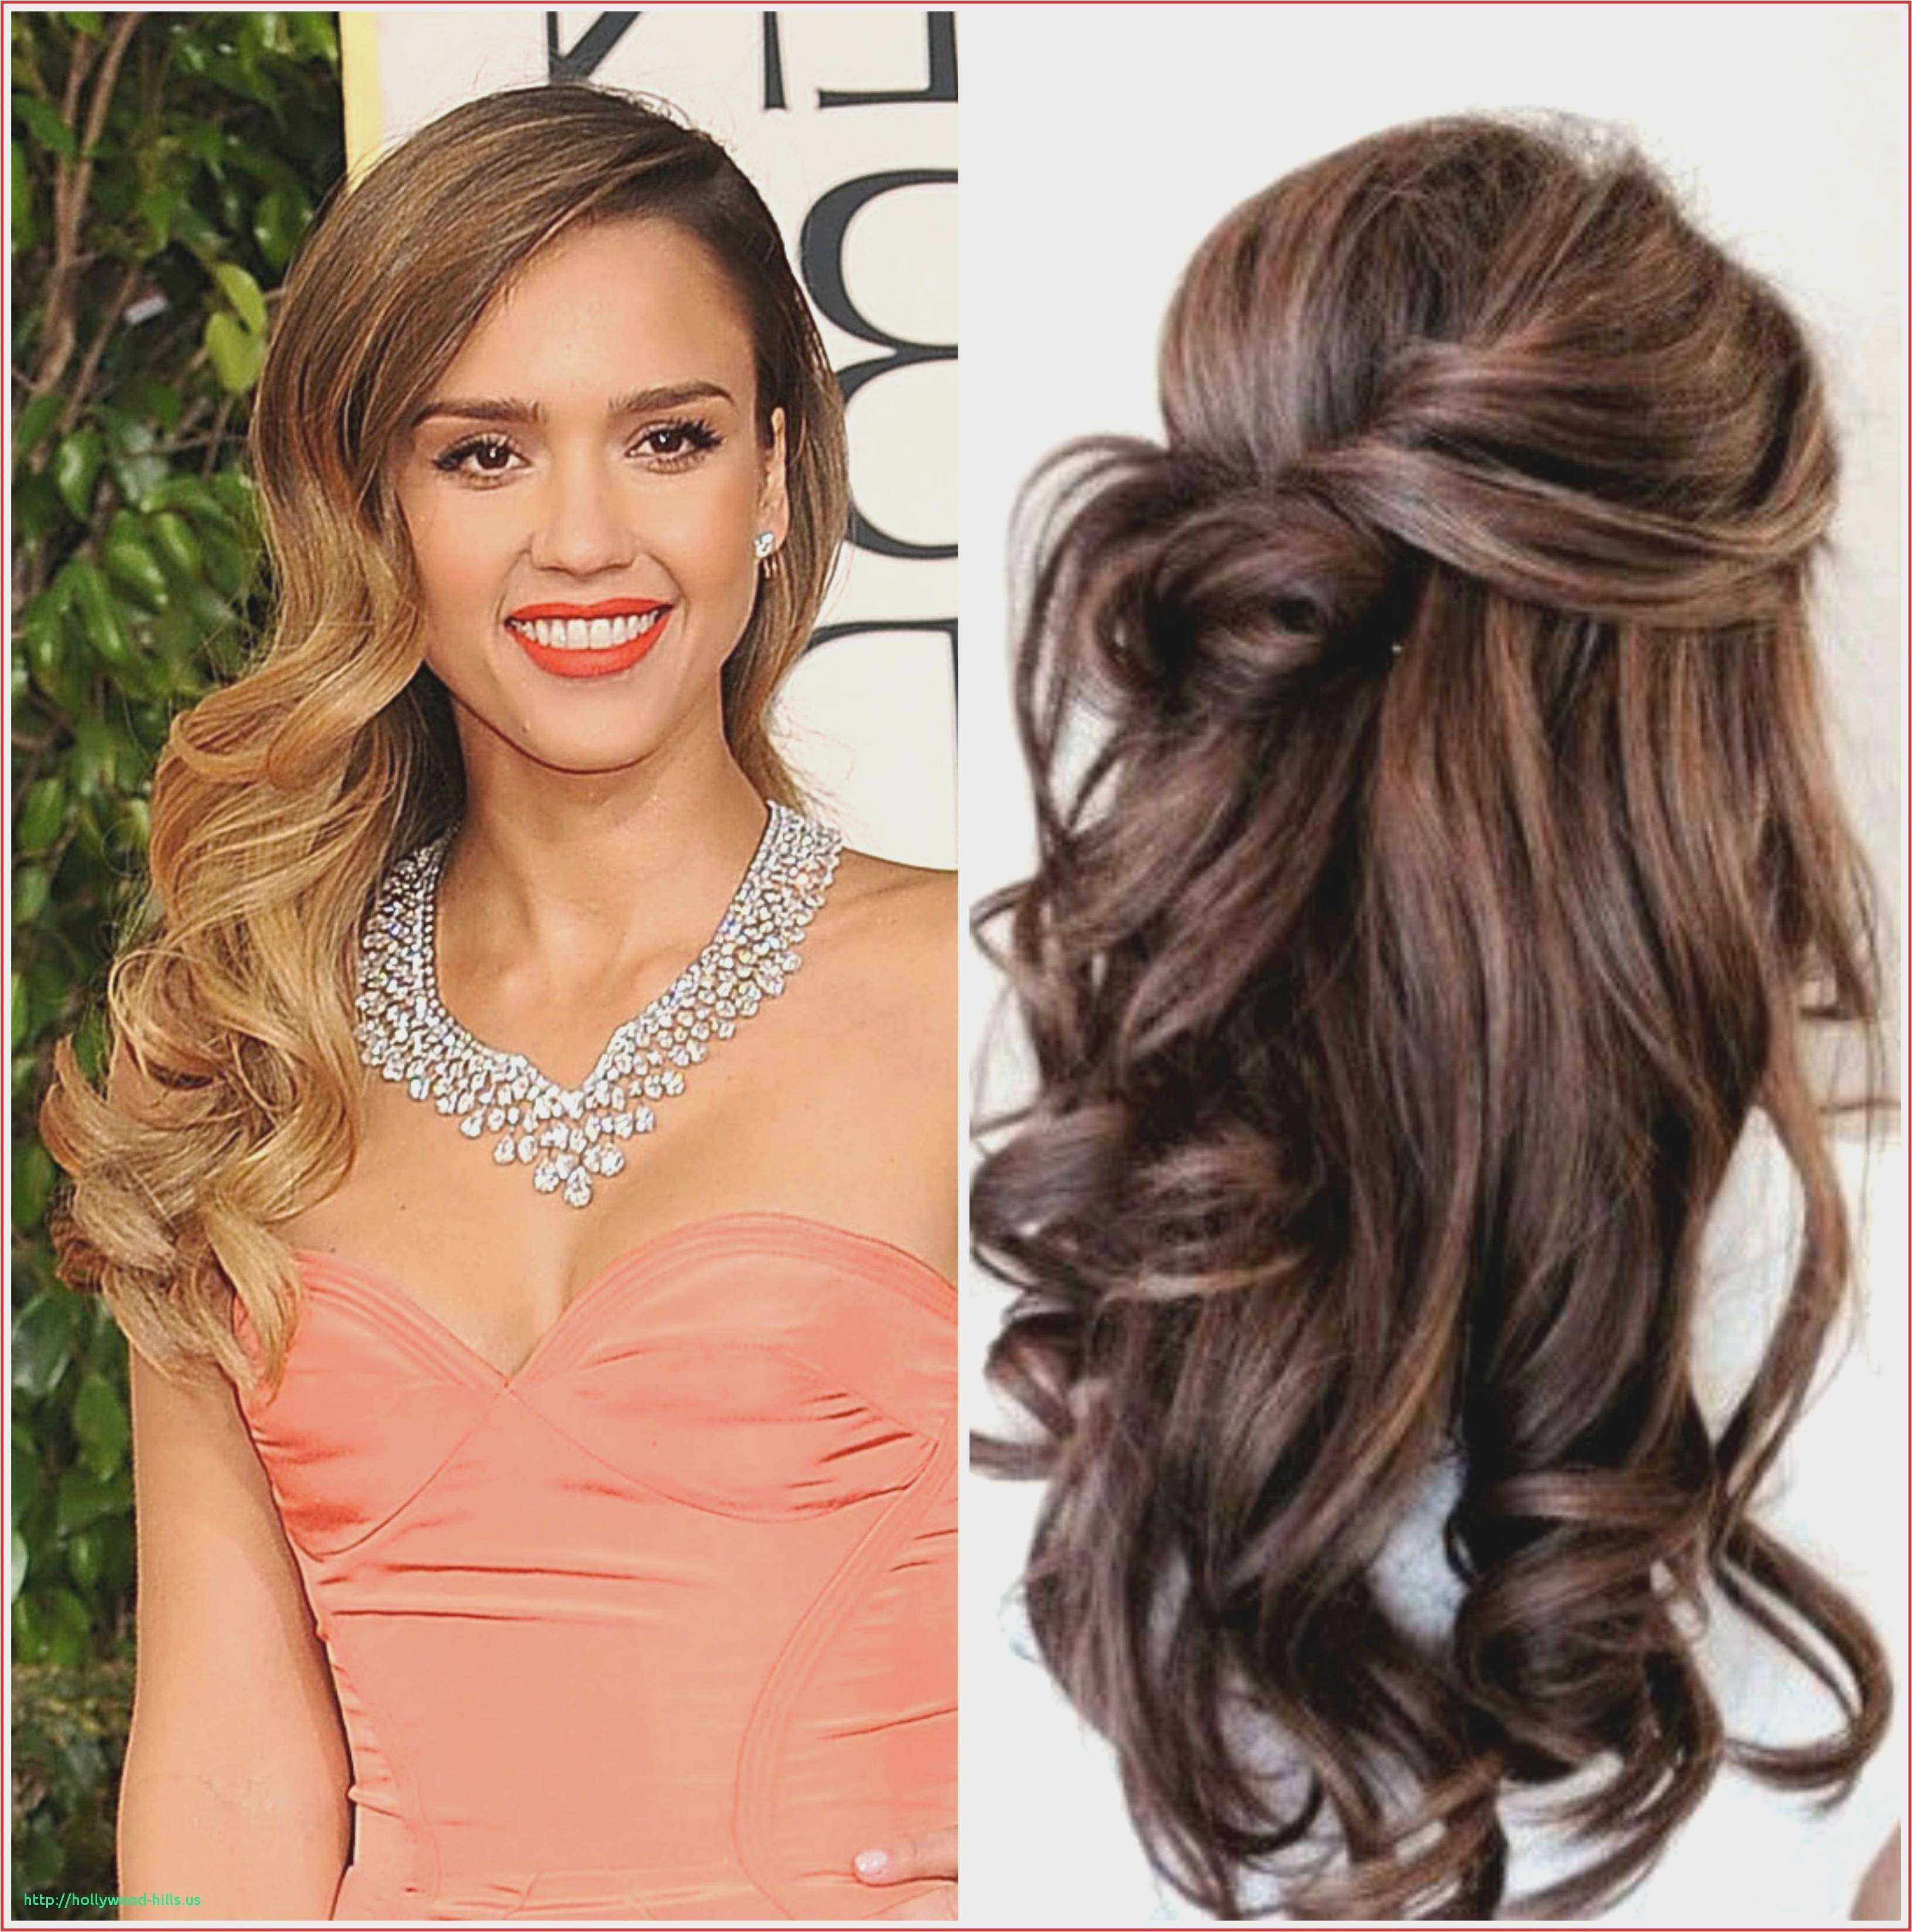 Hairstyles for Popular Girls Fresh Unique Cool Hairstyles that are Easy to Do – Starwarsgames